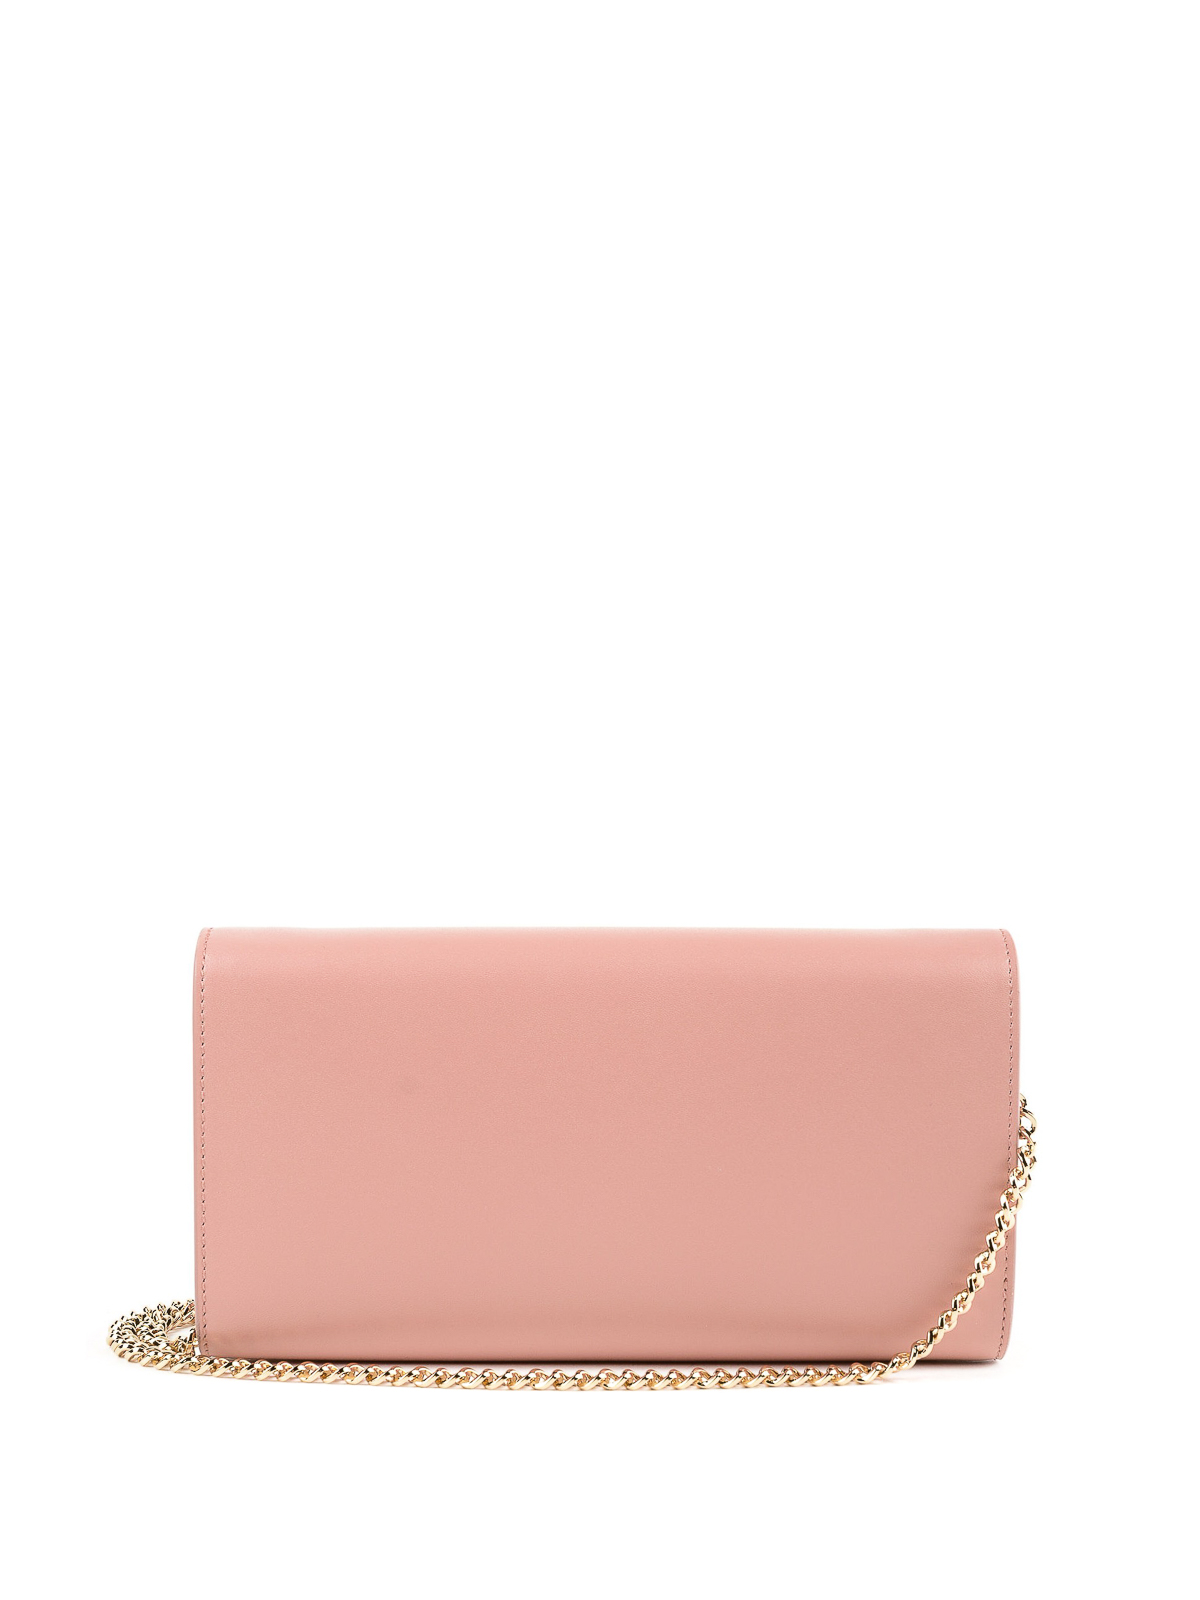 Bow Pink Clutch Ferragamo Ikrix Salvatore Vara Cartera Embragues 48fXHw